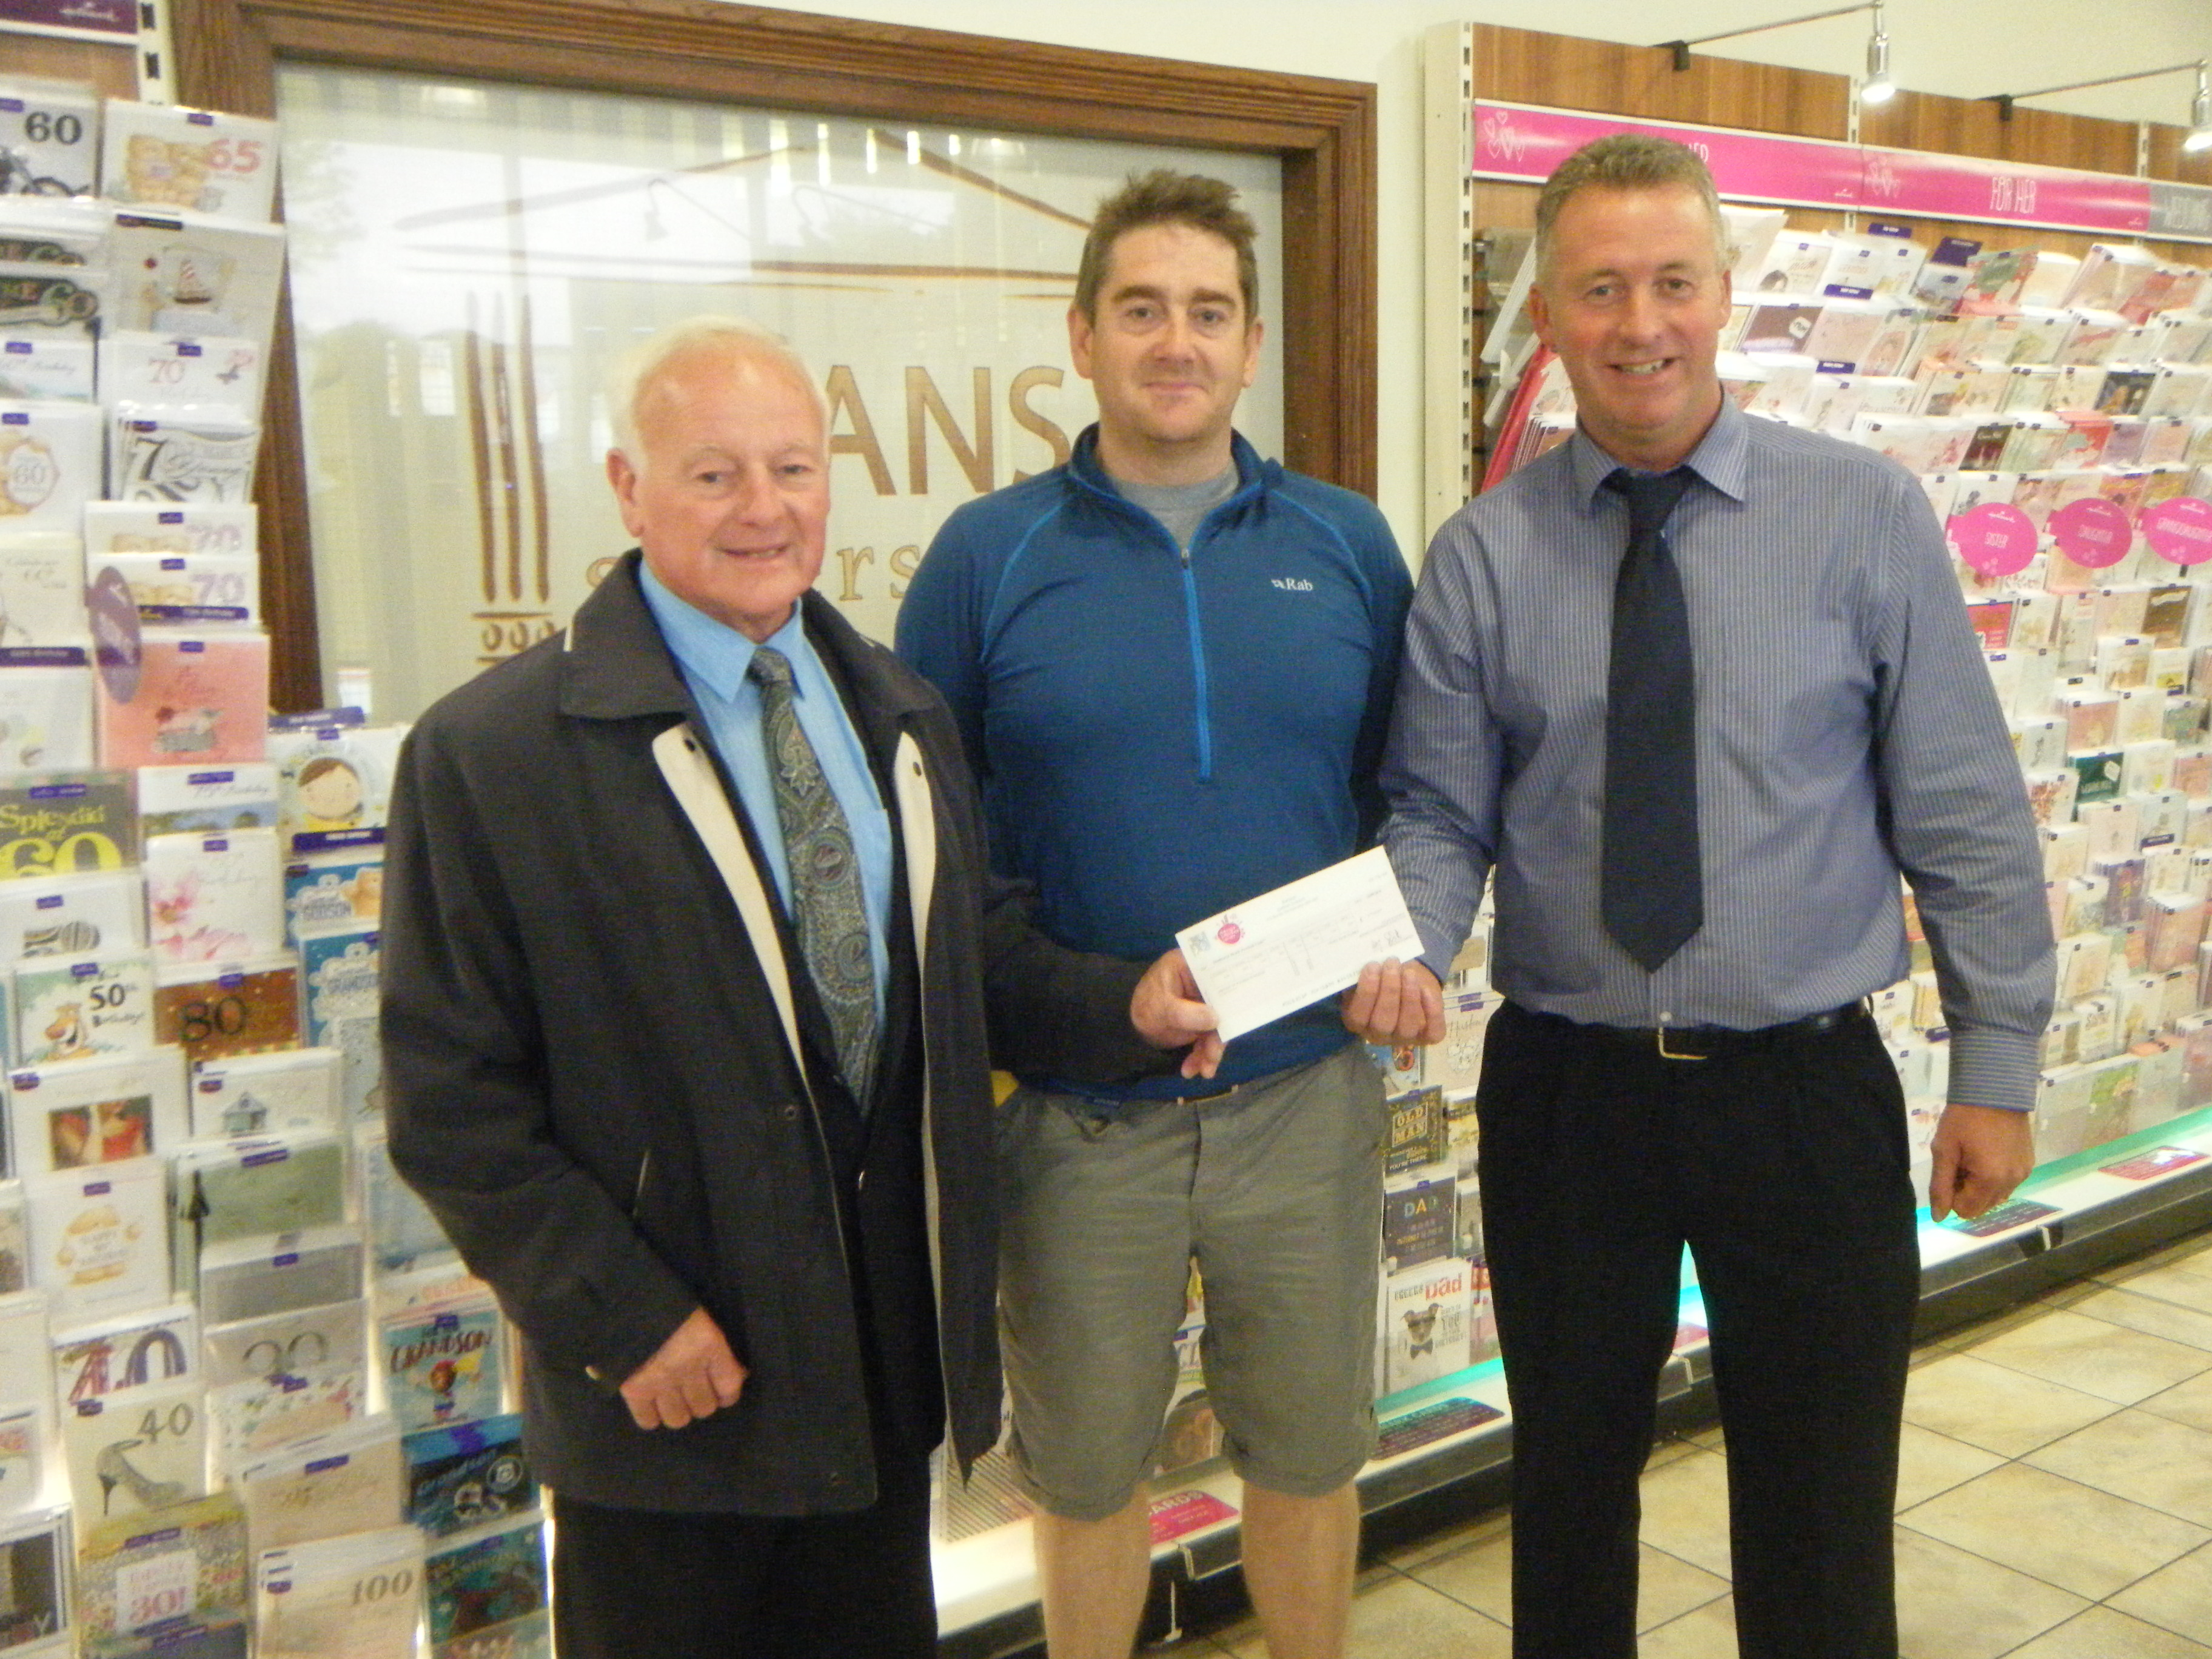 In the picture  Ken Jones (Treasurer) right, Andy Williams (Manager) and Partner Andrew Faulks who can be seen presenting the cheque